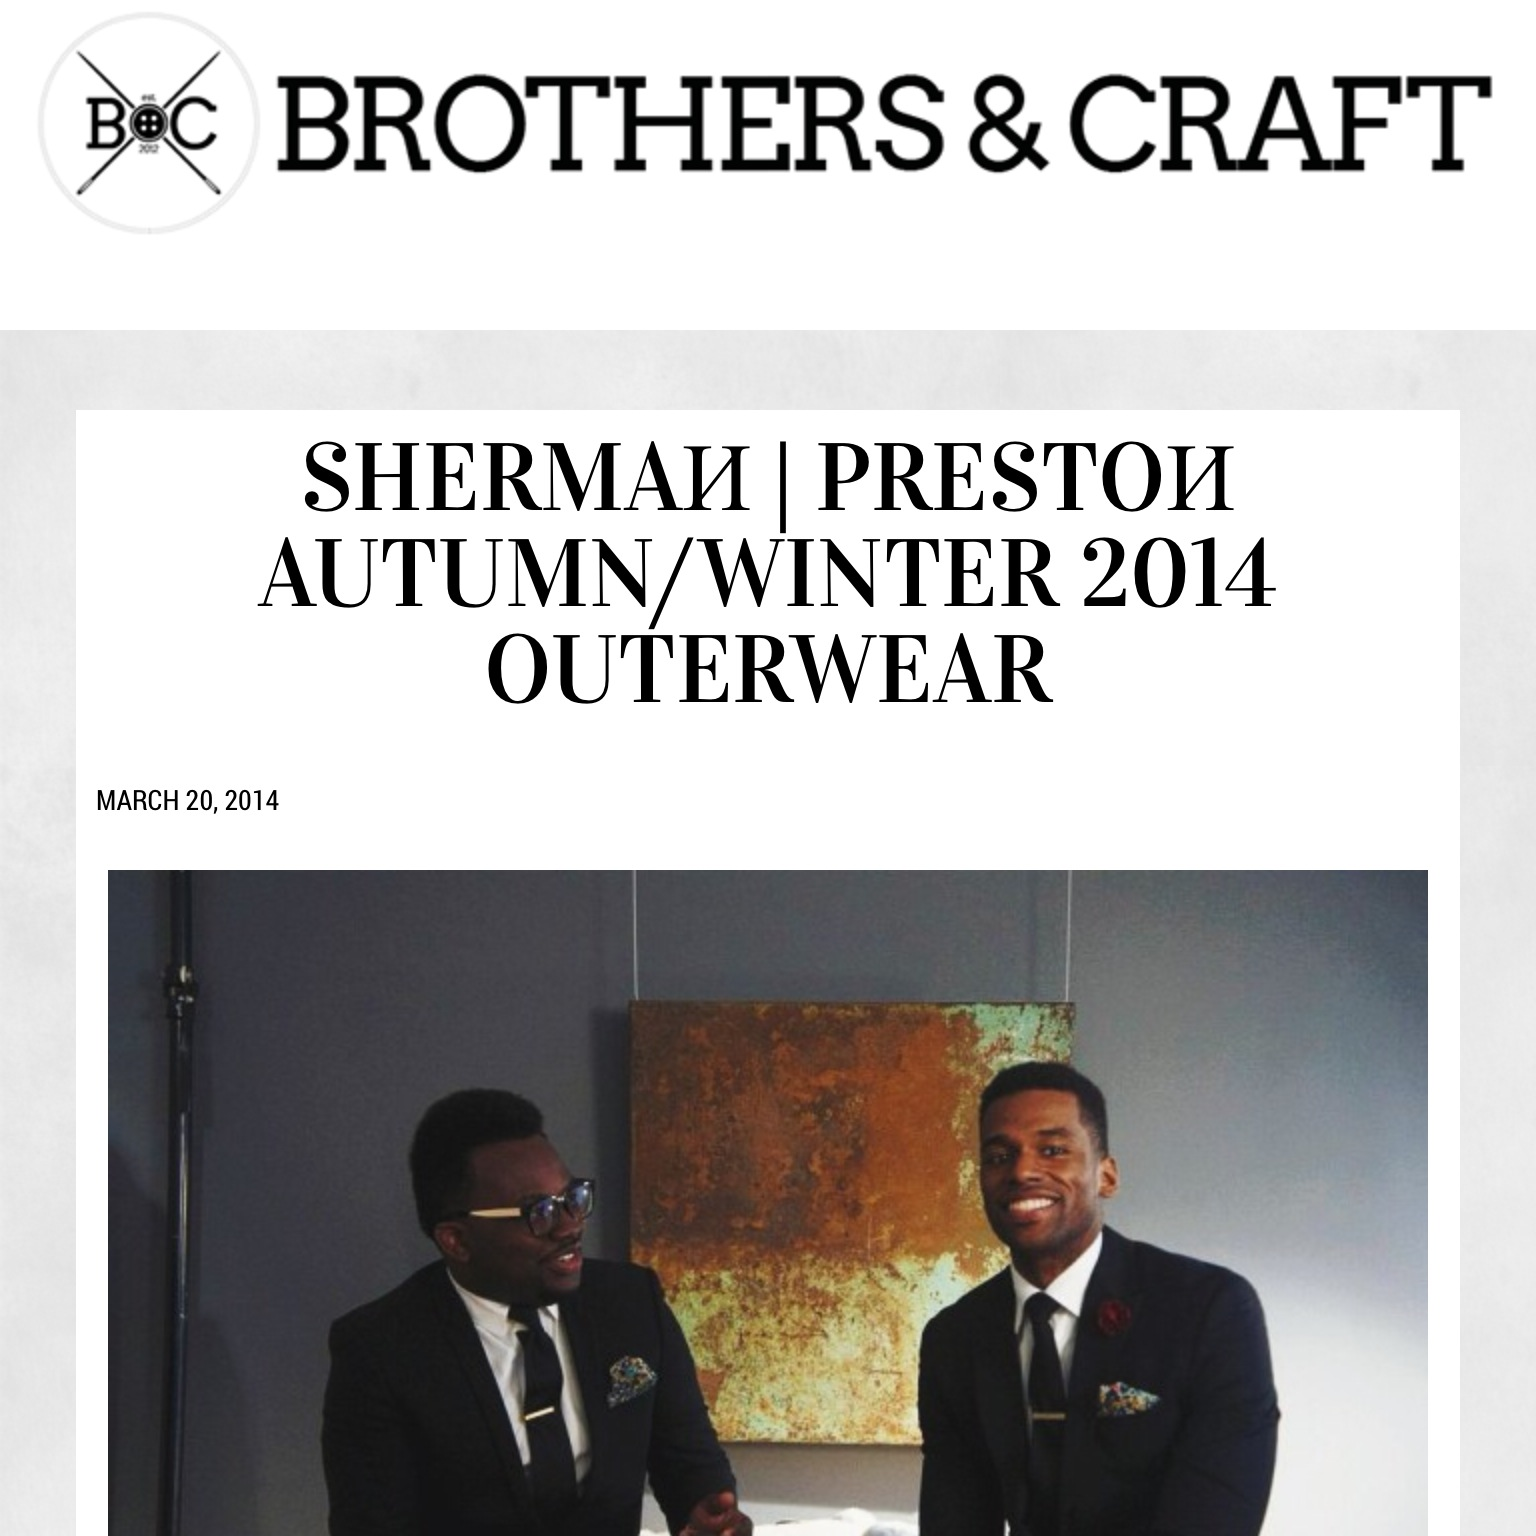 SHERMAИ|PRESTOИ x Brothers & Craft